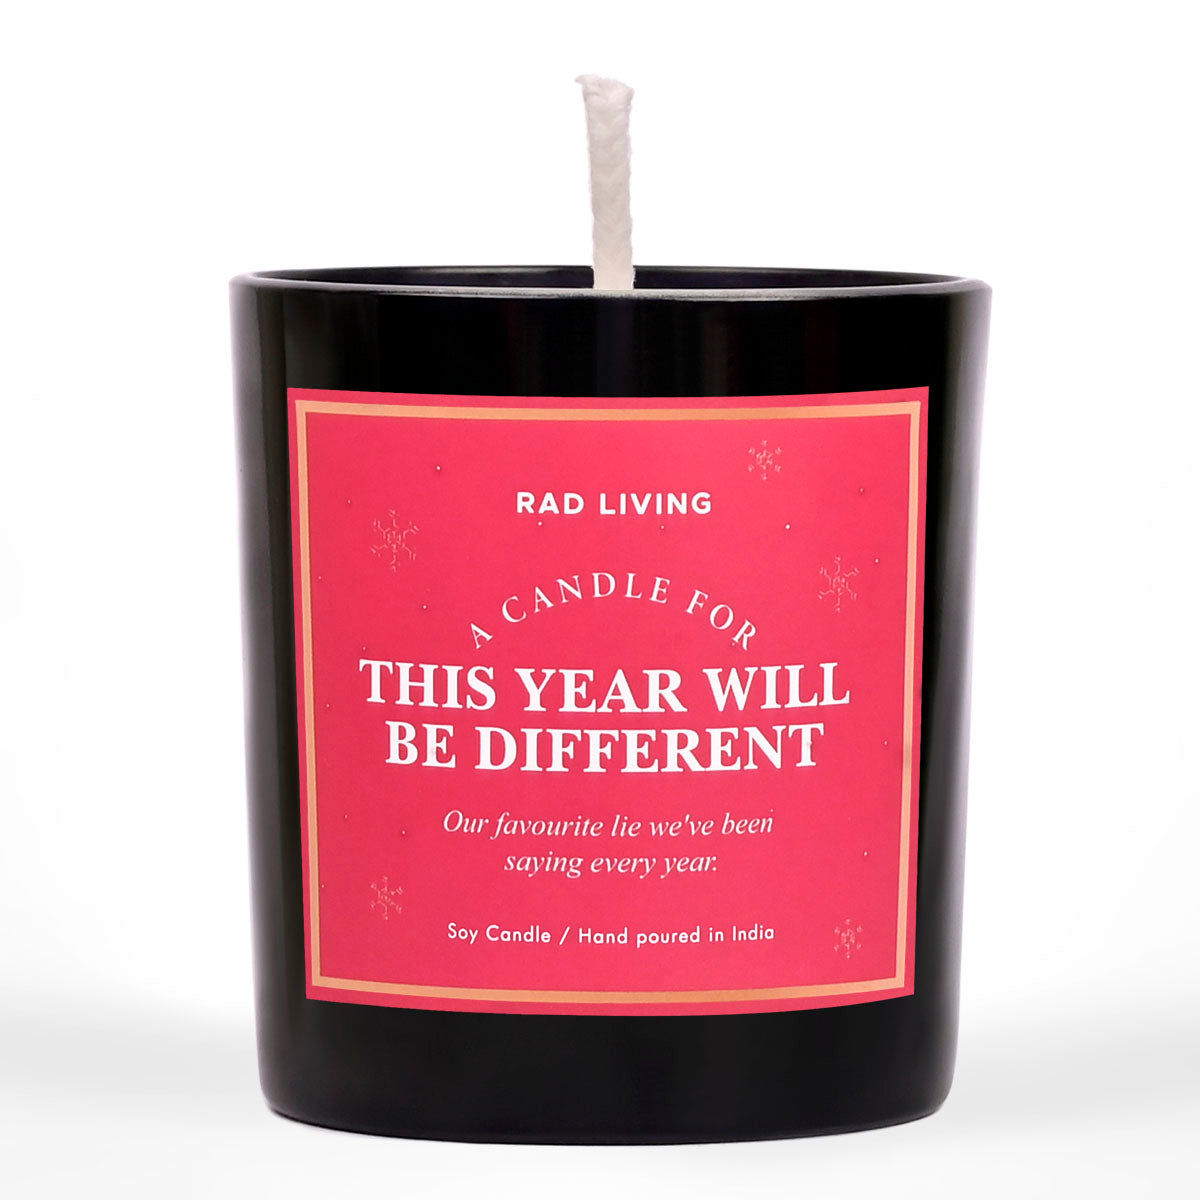 This Year Will Be Different - Saltwater Sea musk Scented Candle